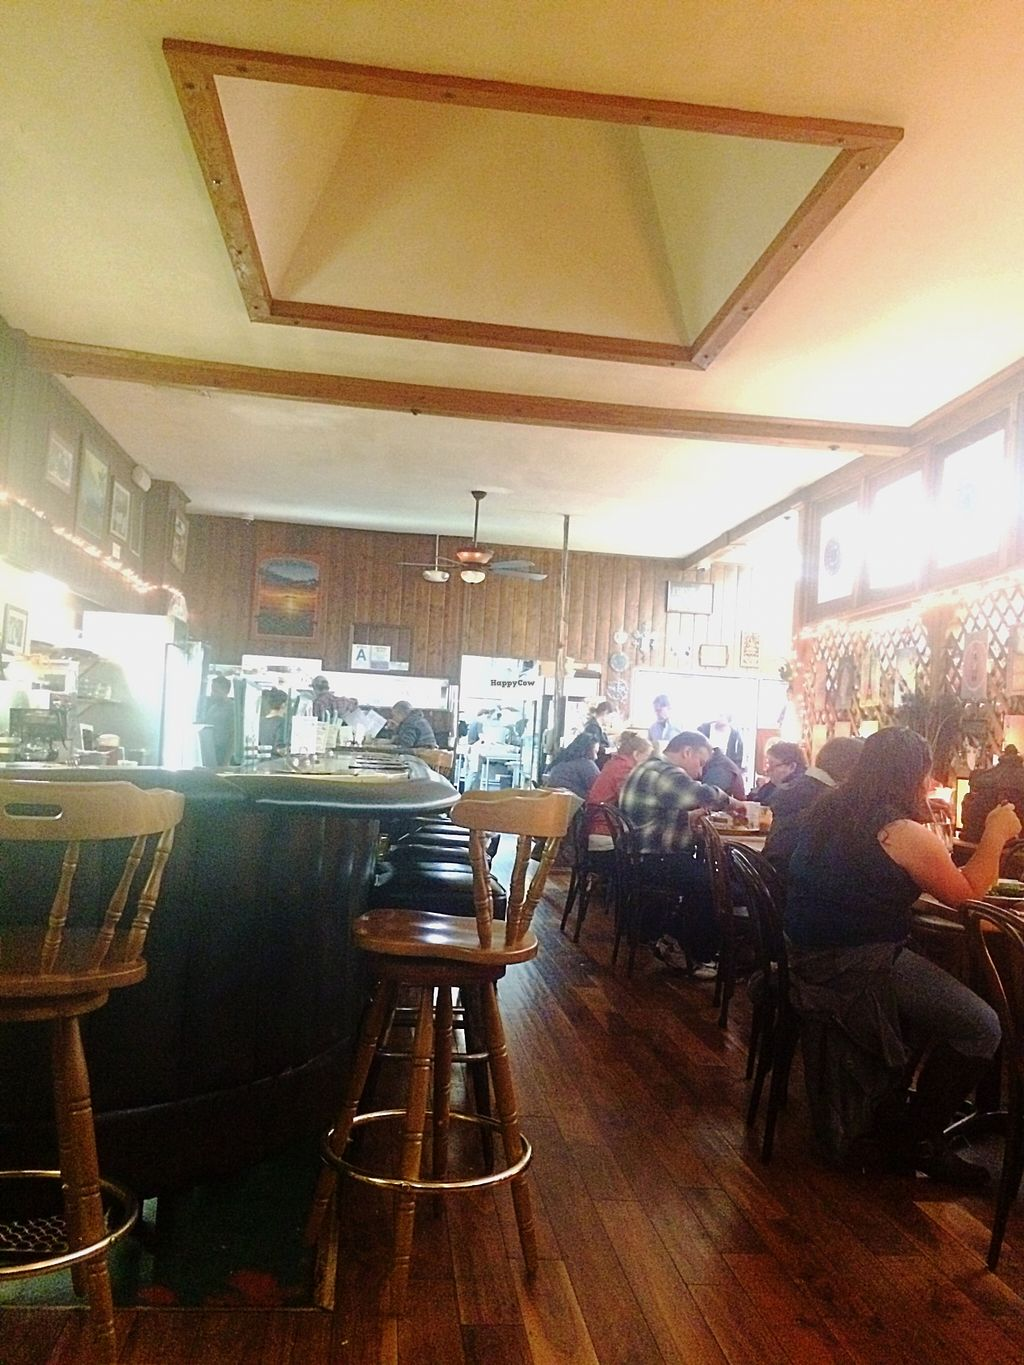 """Photo of Follow Your Heart Restaurant and Market  by <a href=""""/members/profile/serrarose"""">serrarose</a> <br/>The restaurant seating area <br/> December 27, 2015  - <a href='/contact/abuse/image/1609/130041'>Report</a>"""